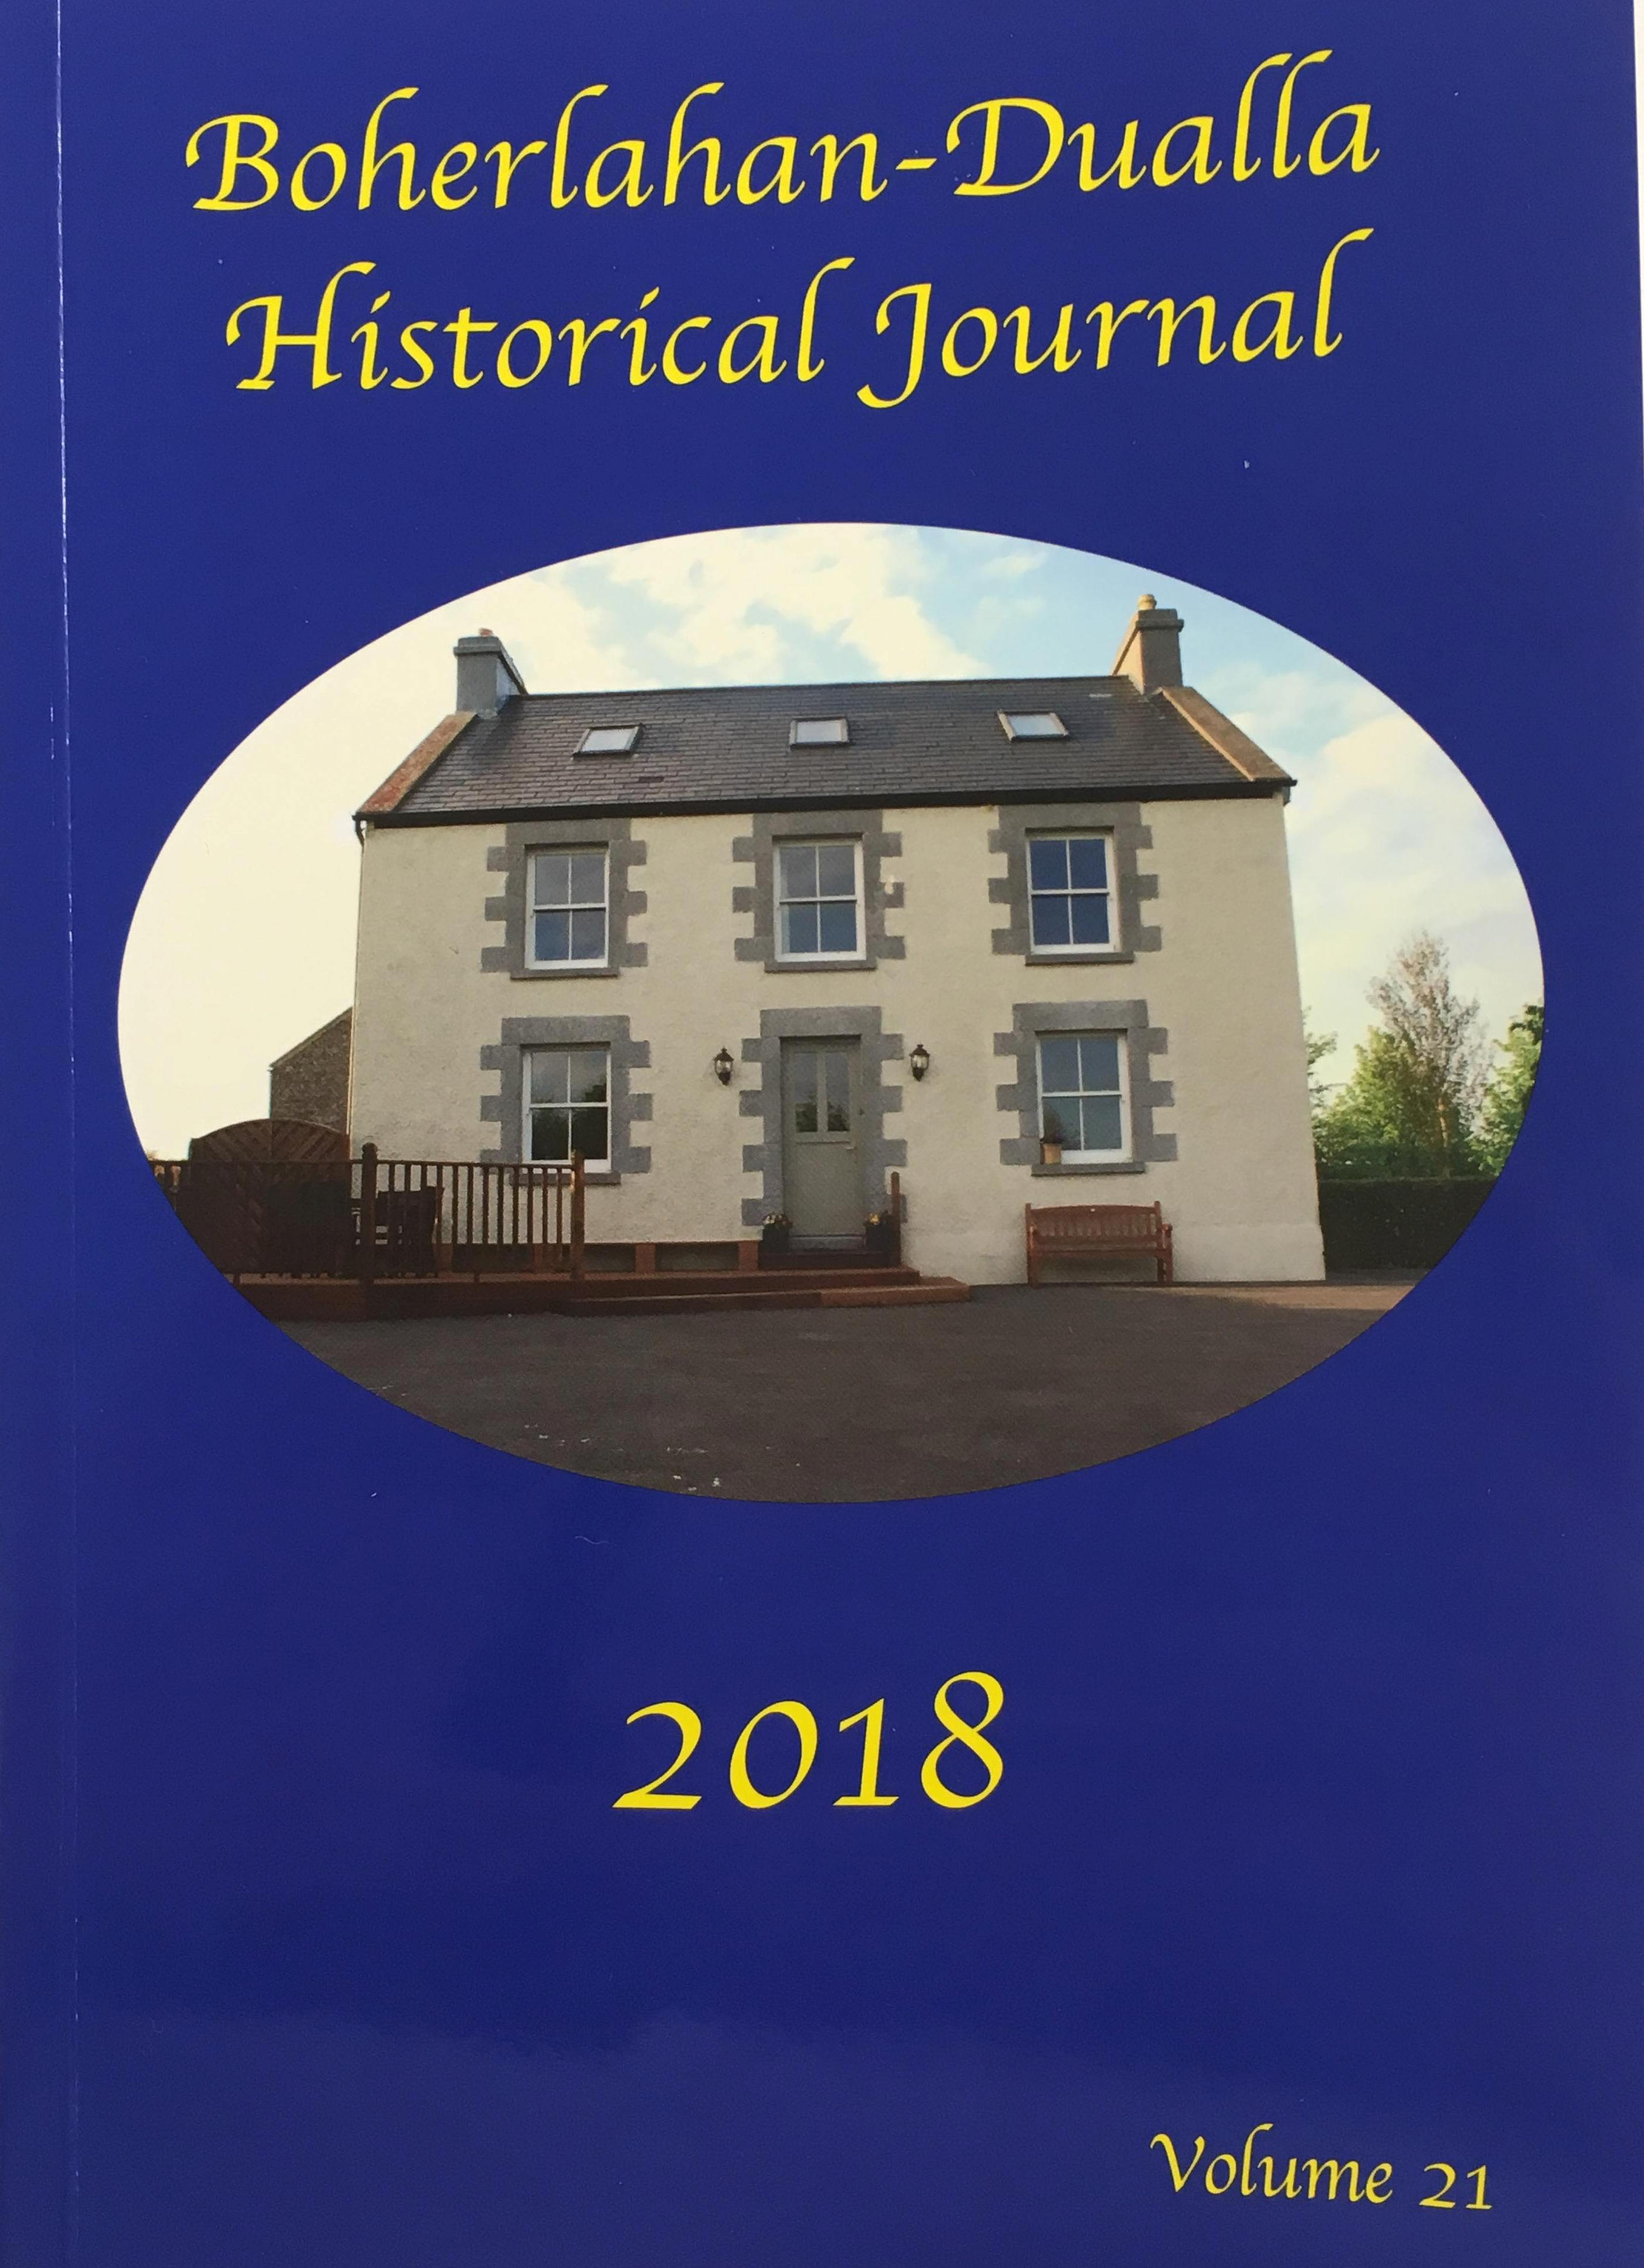 Launch of 2019 Historical Journal.